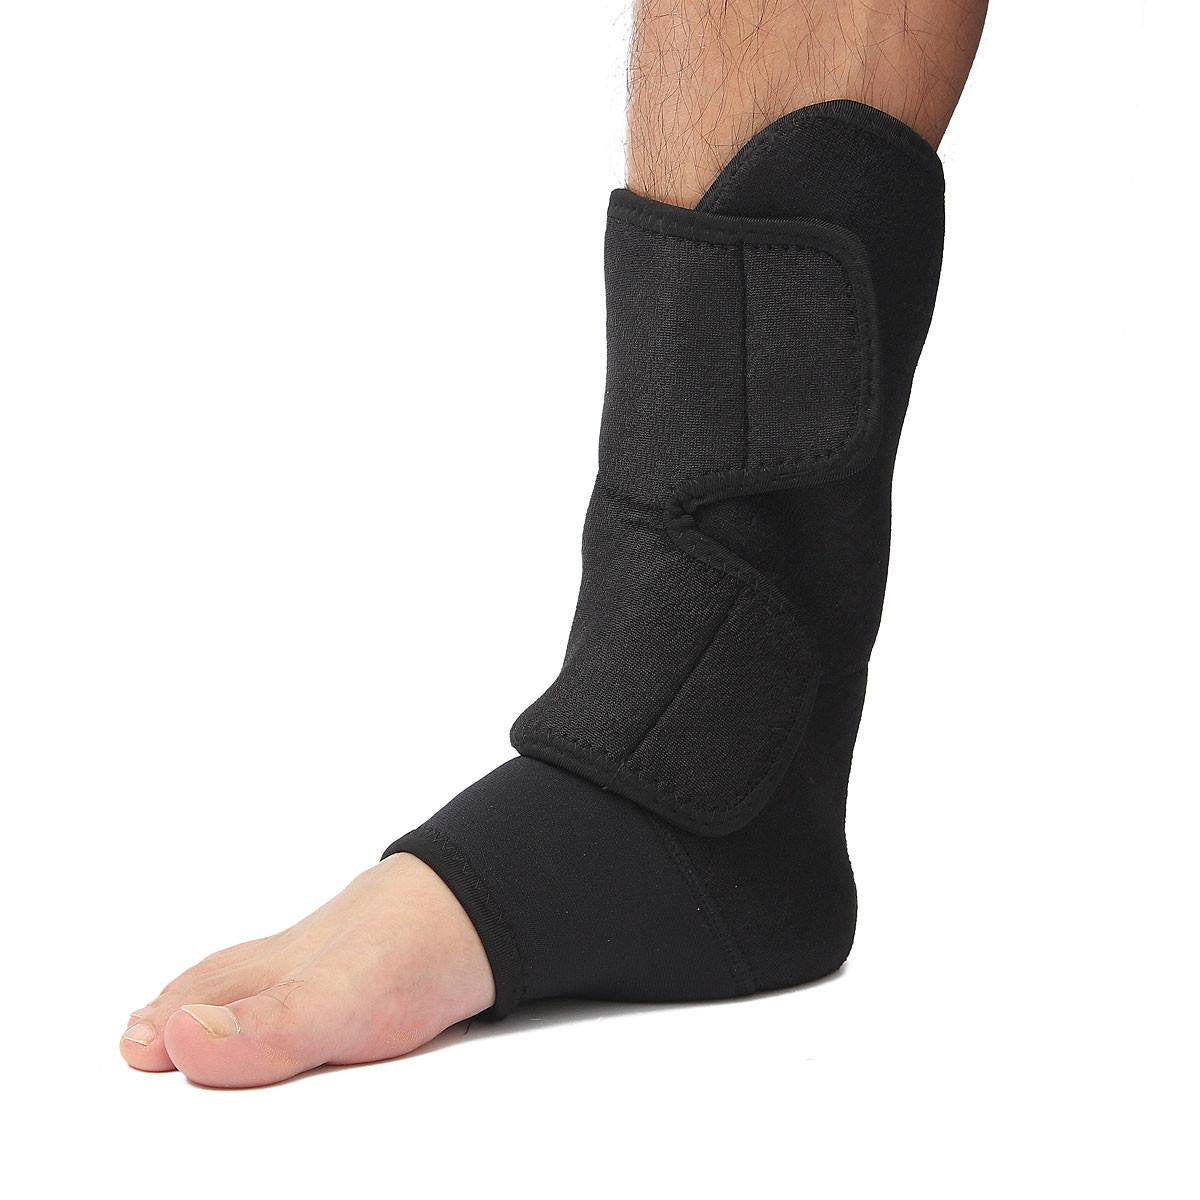 Health - Ankle Genie - #1 Ankle Support